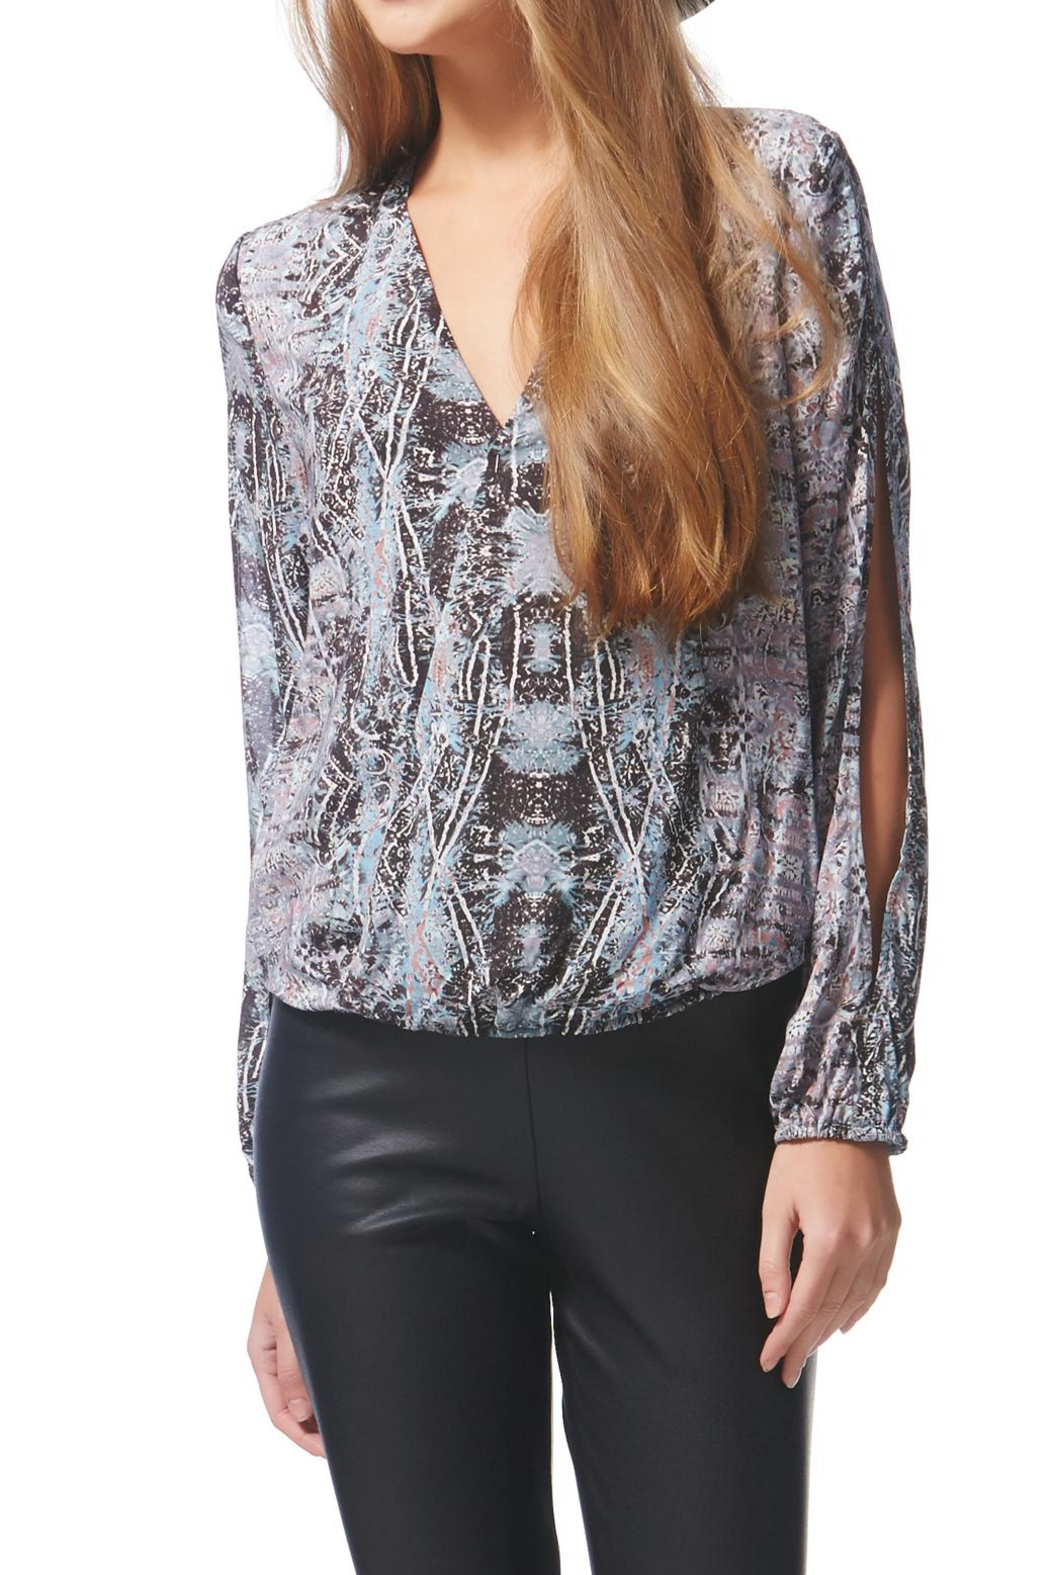 Tart Collections Date Night Top - Main Image